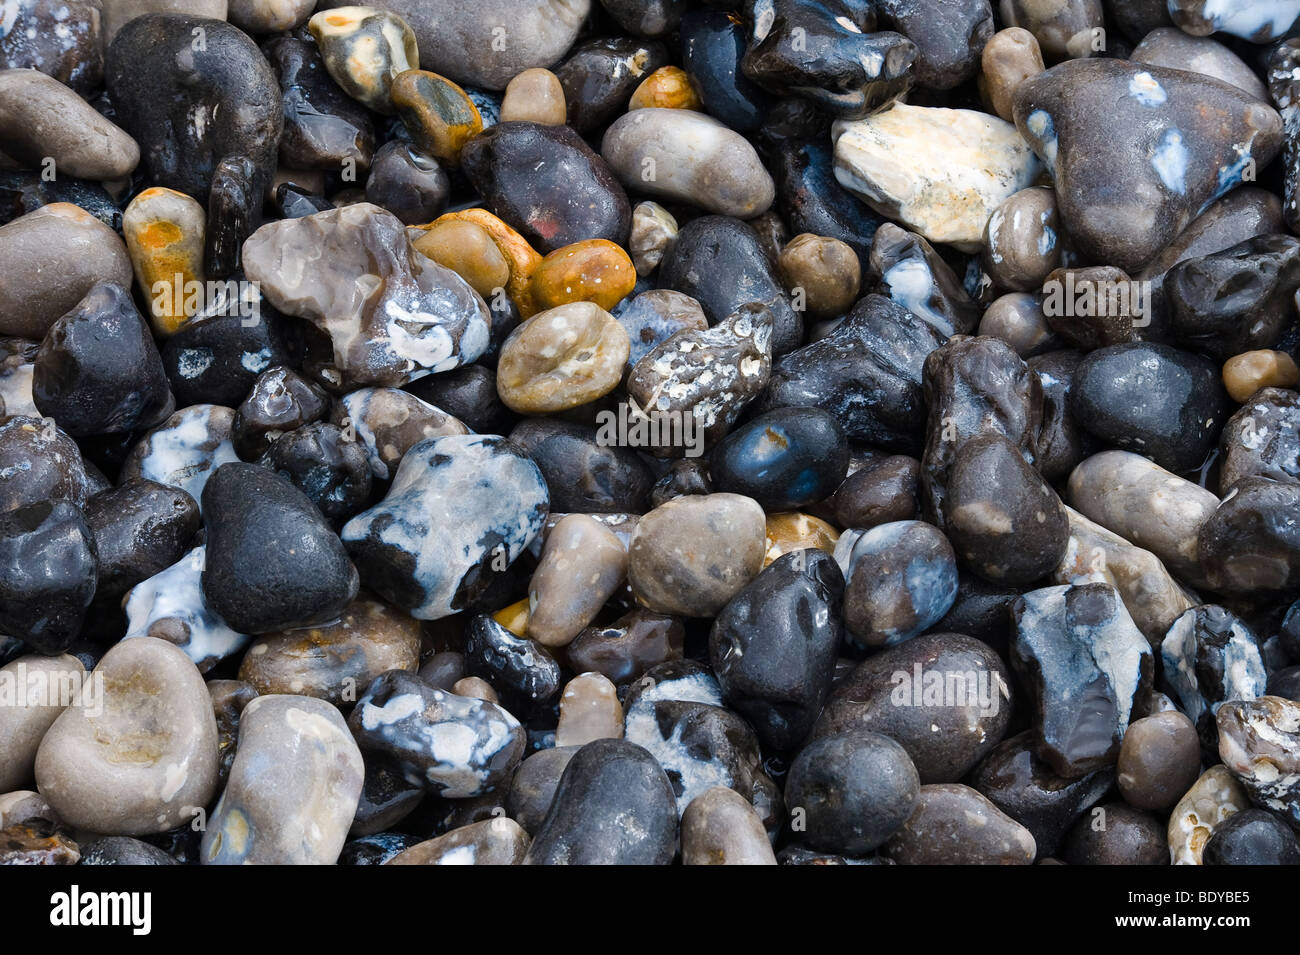 Black stones on the beach, Ault, Picardie, France, Europe - Stock Image